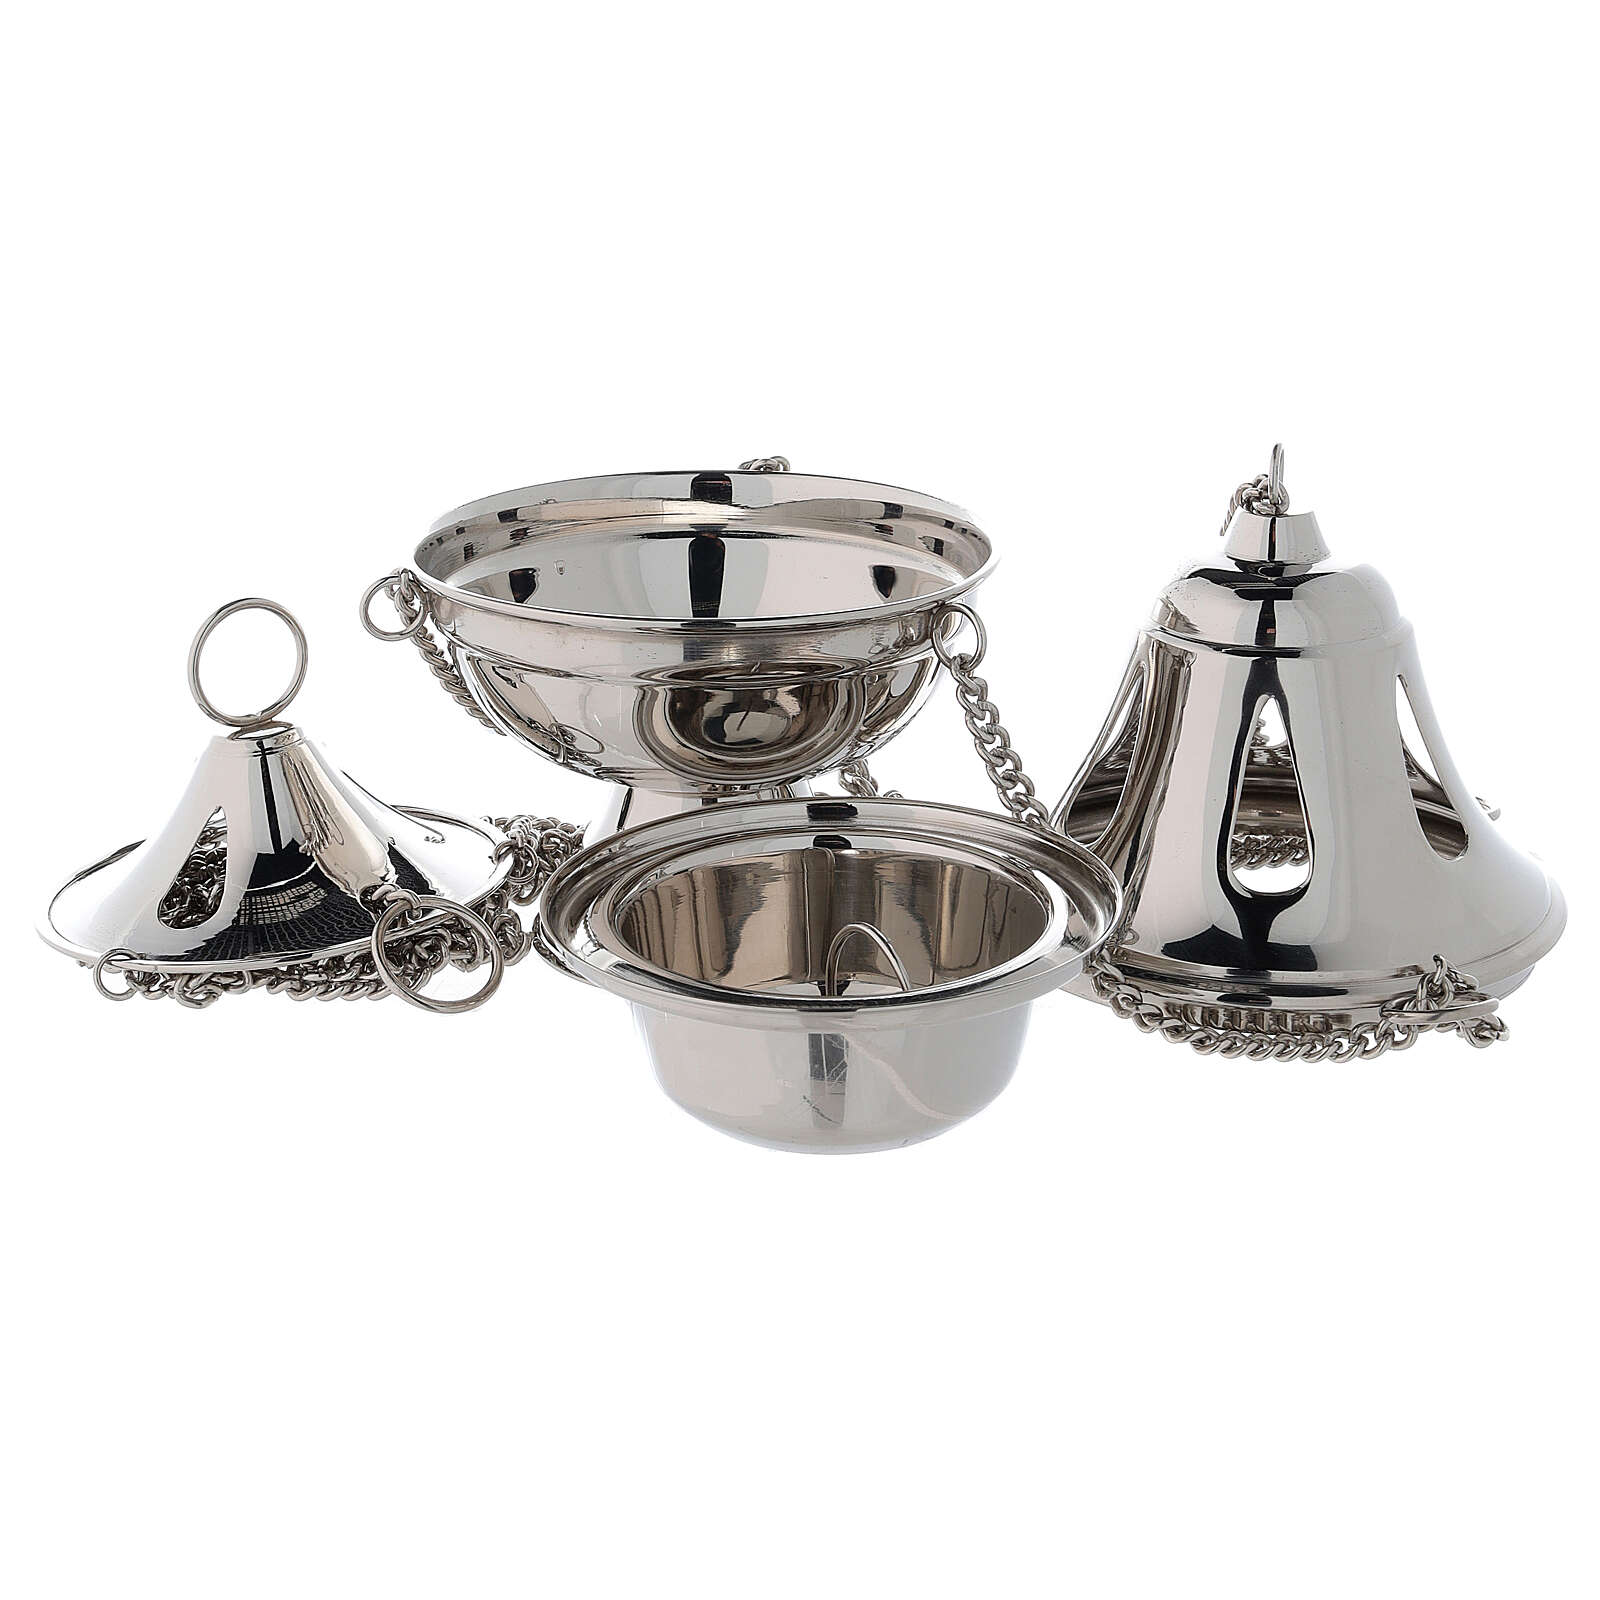 Bell shaped thurible with drop-shaped holes h 6 3/4 in nickel-plated brass 3